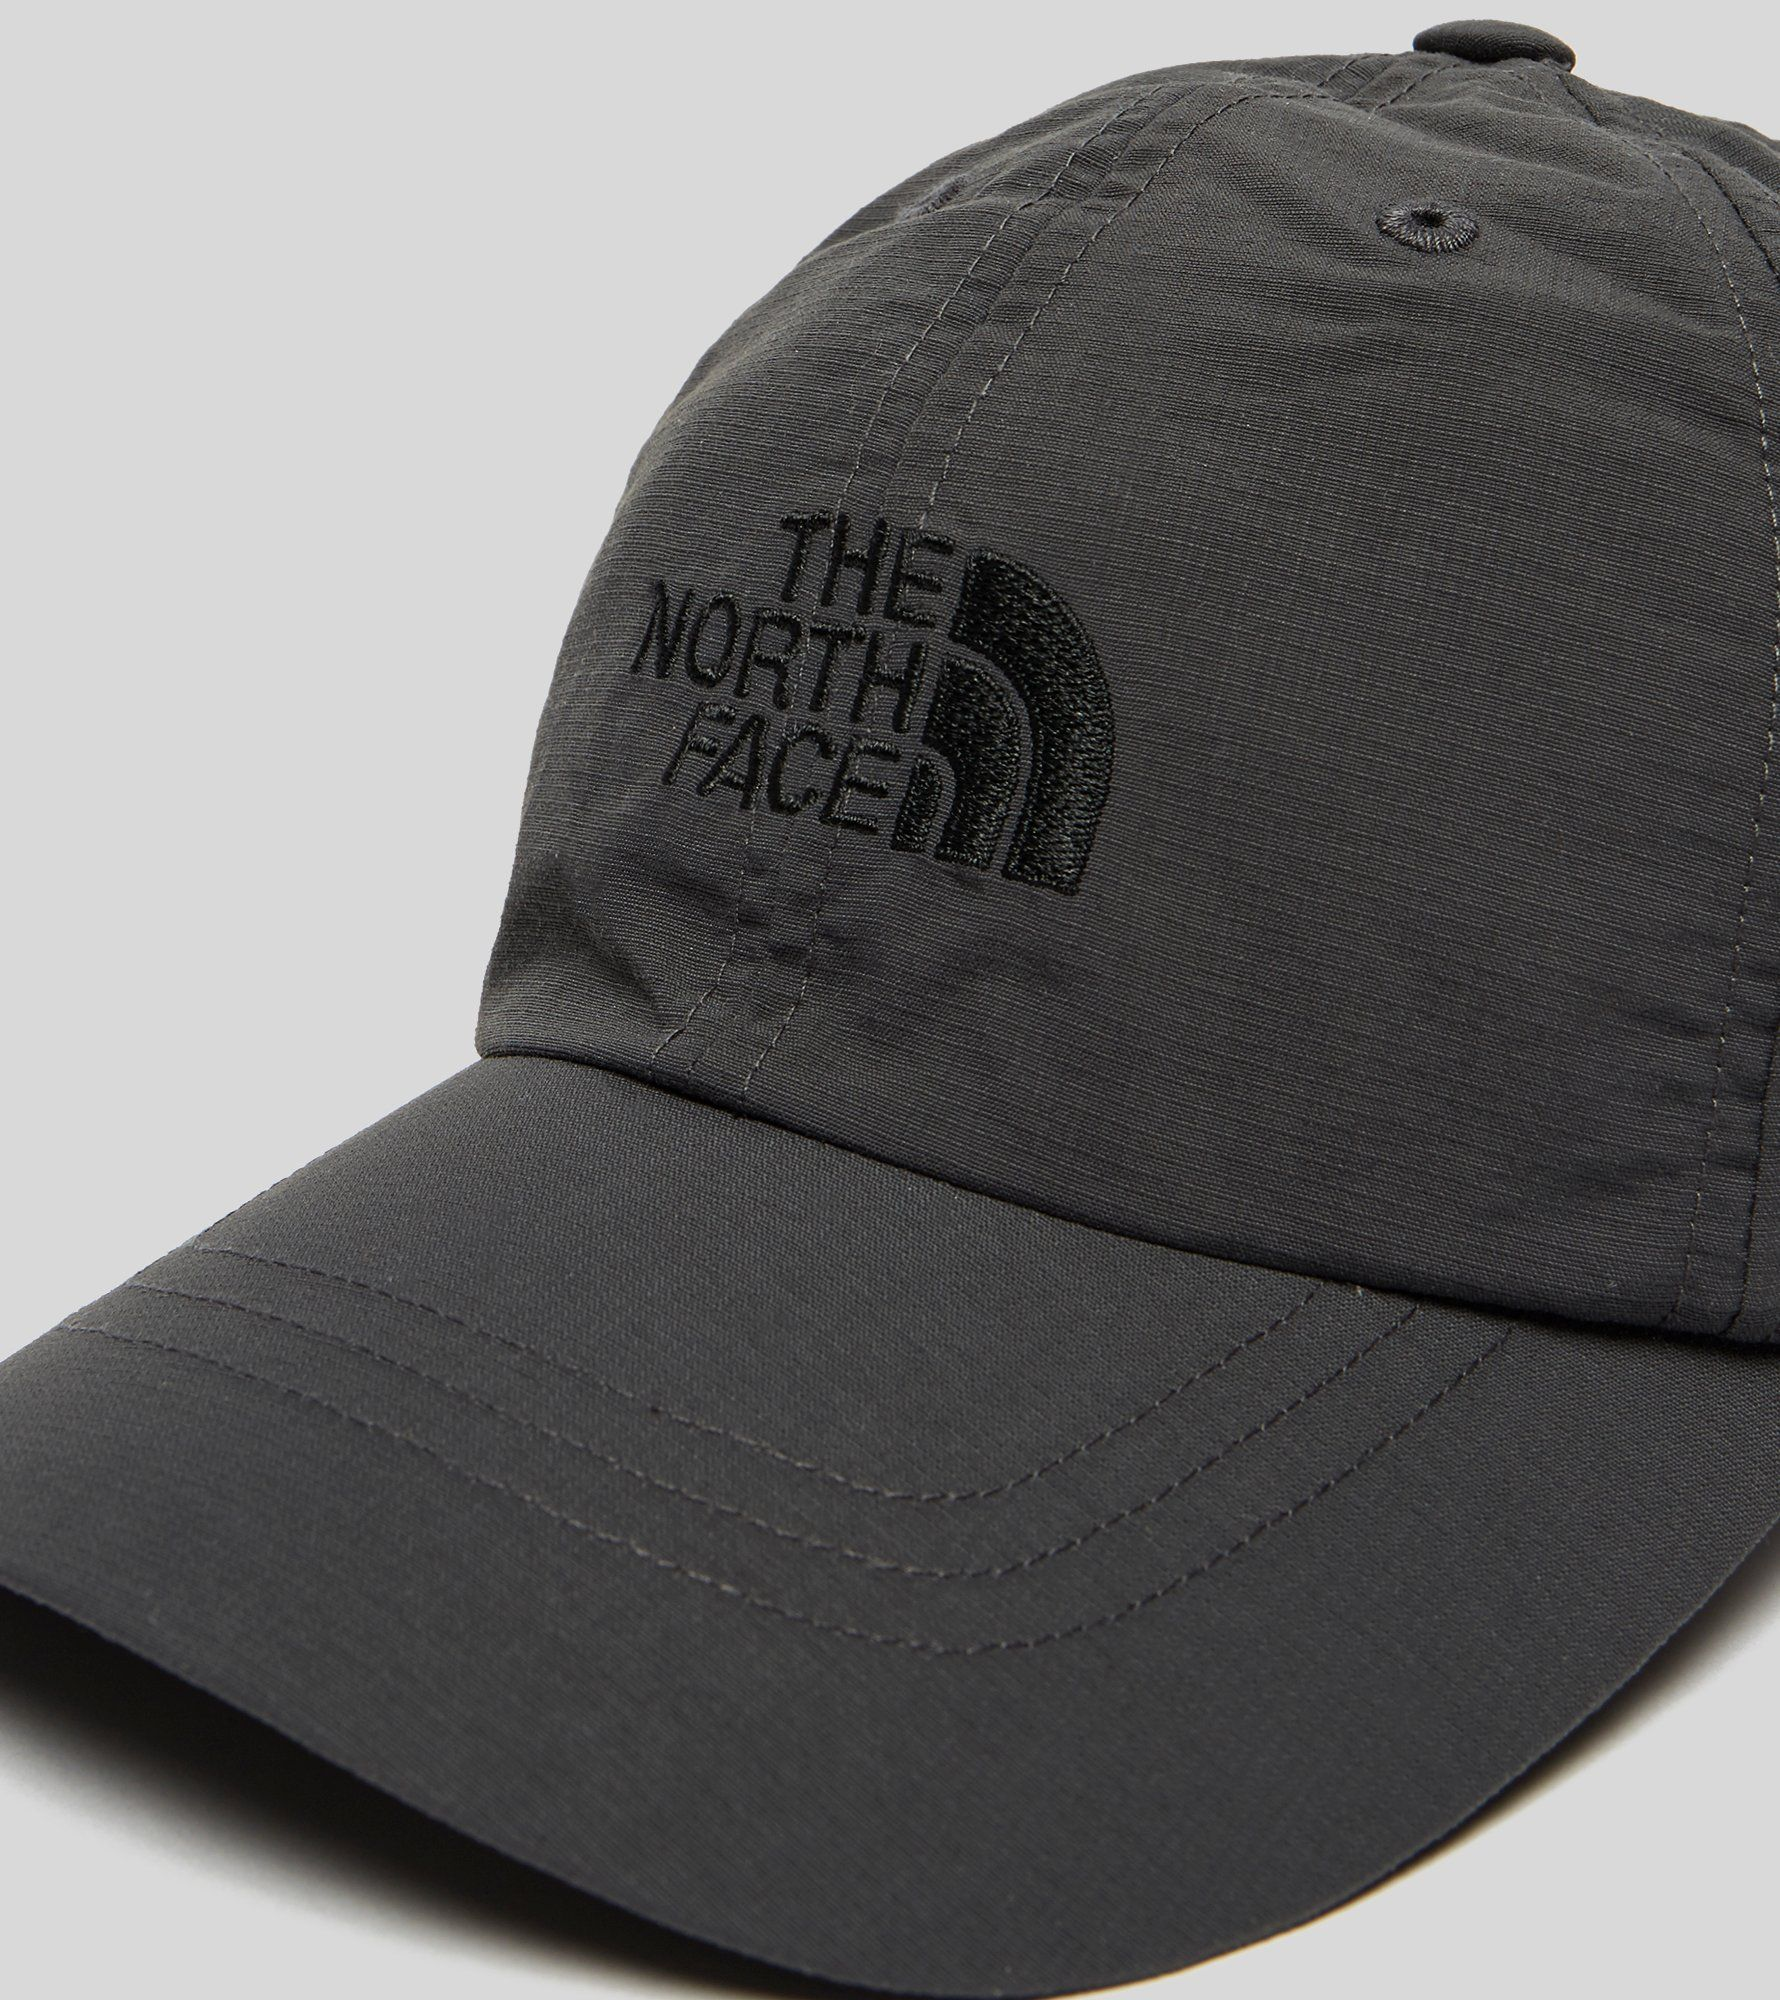 The North Face Horizon Ball Strapback Cap